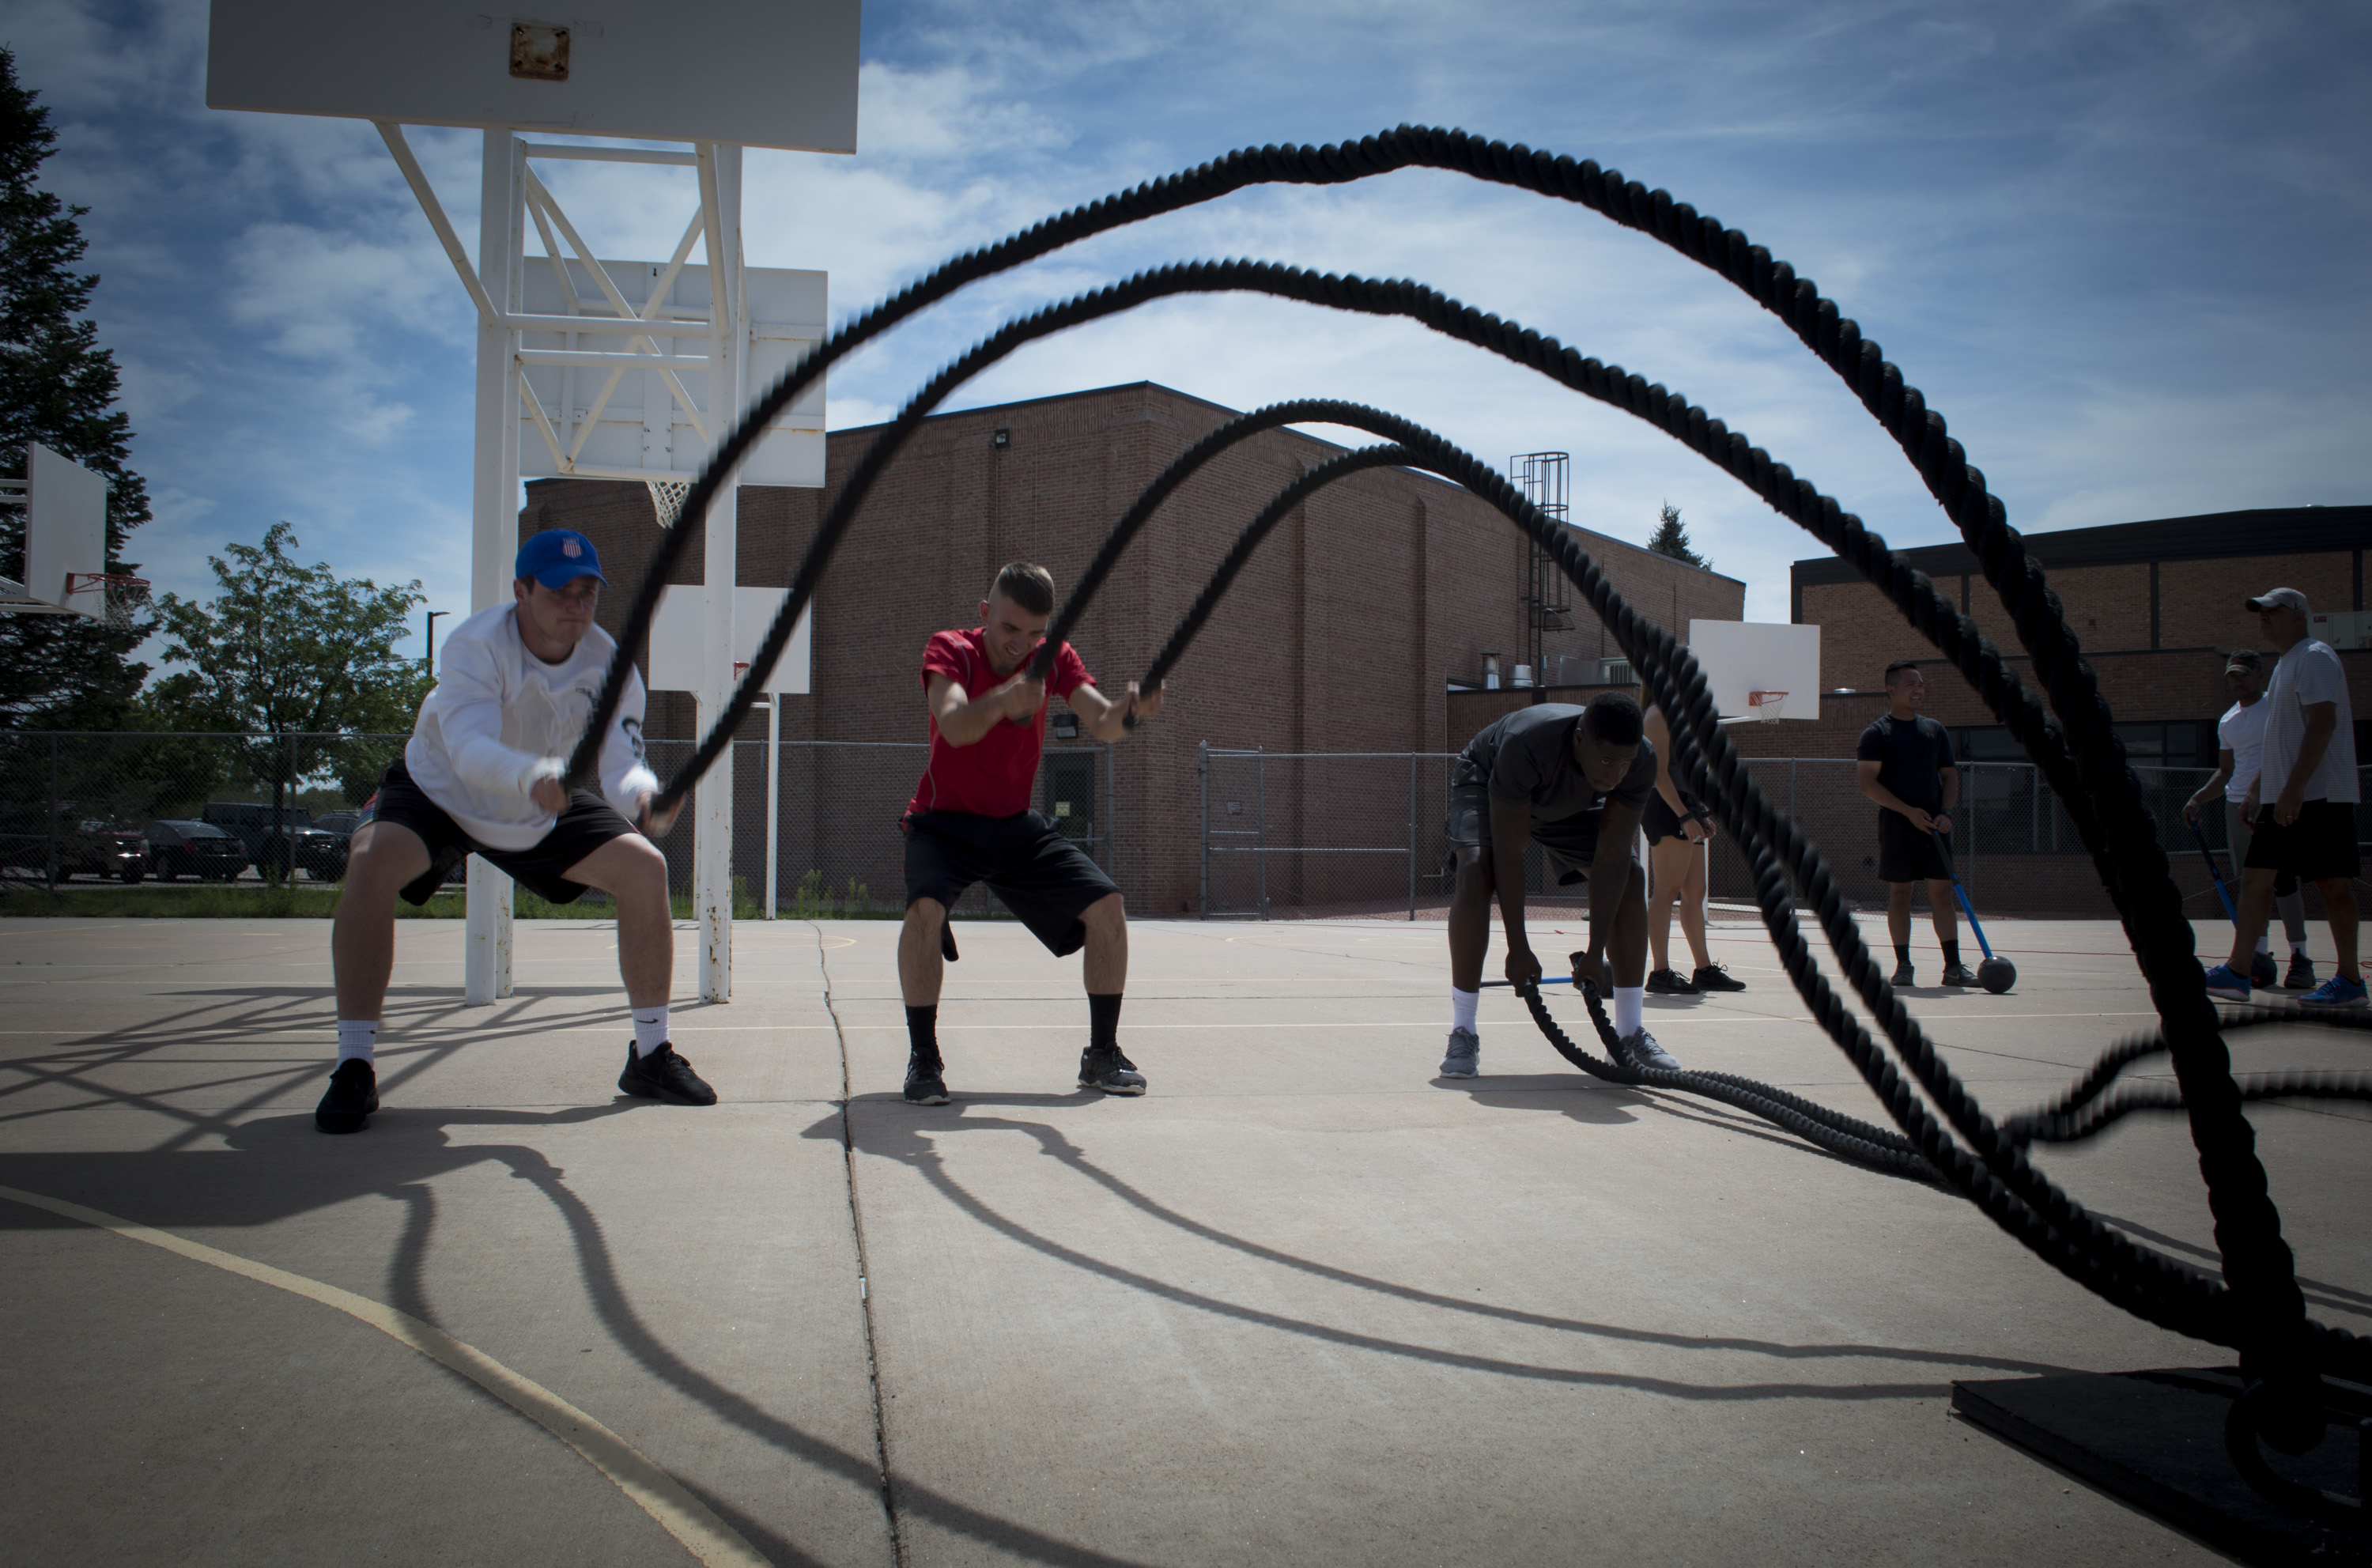 Guys using battle ropes on basketball court